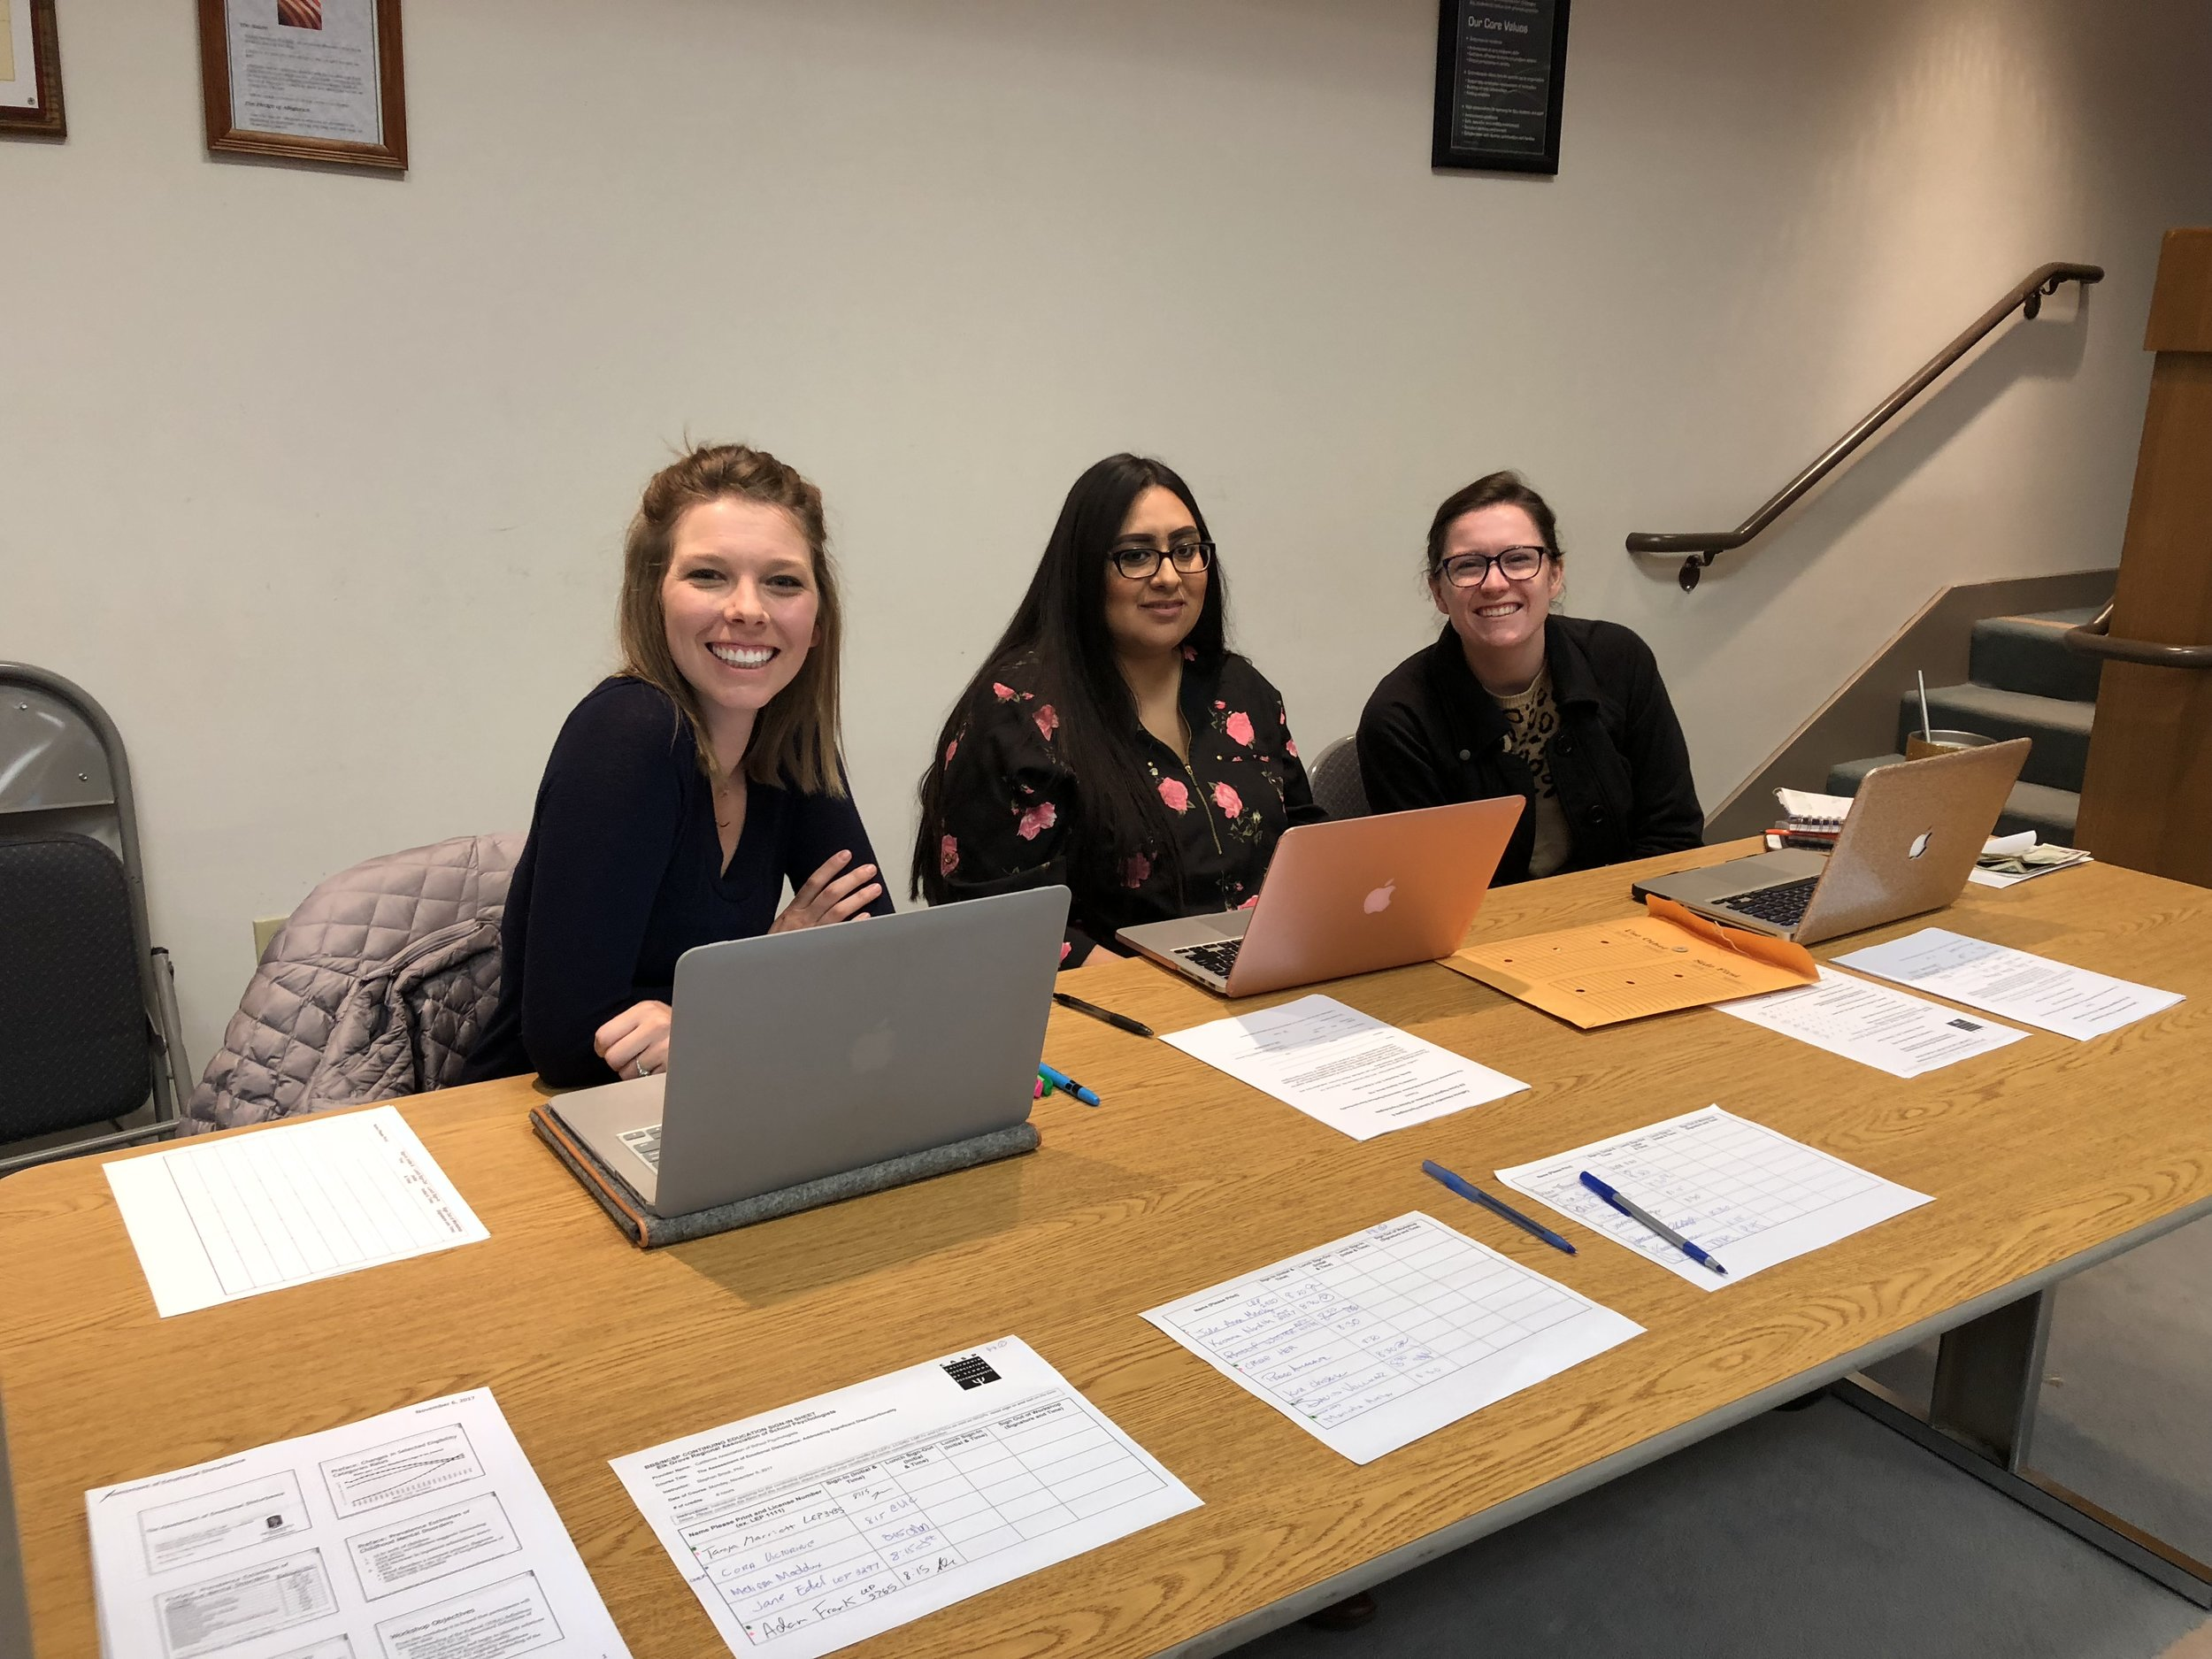 EGRASP student reps - Mary, Jessica, Amy